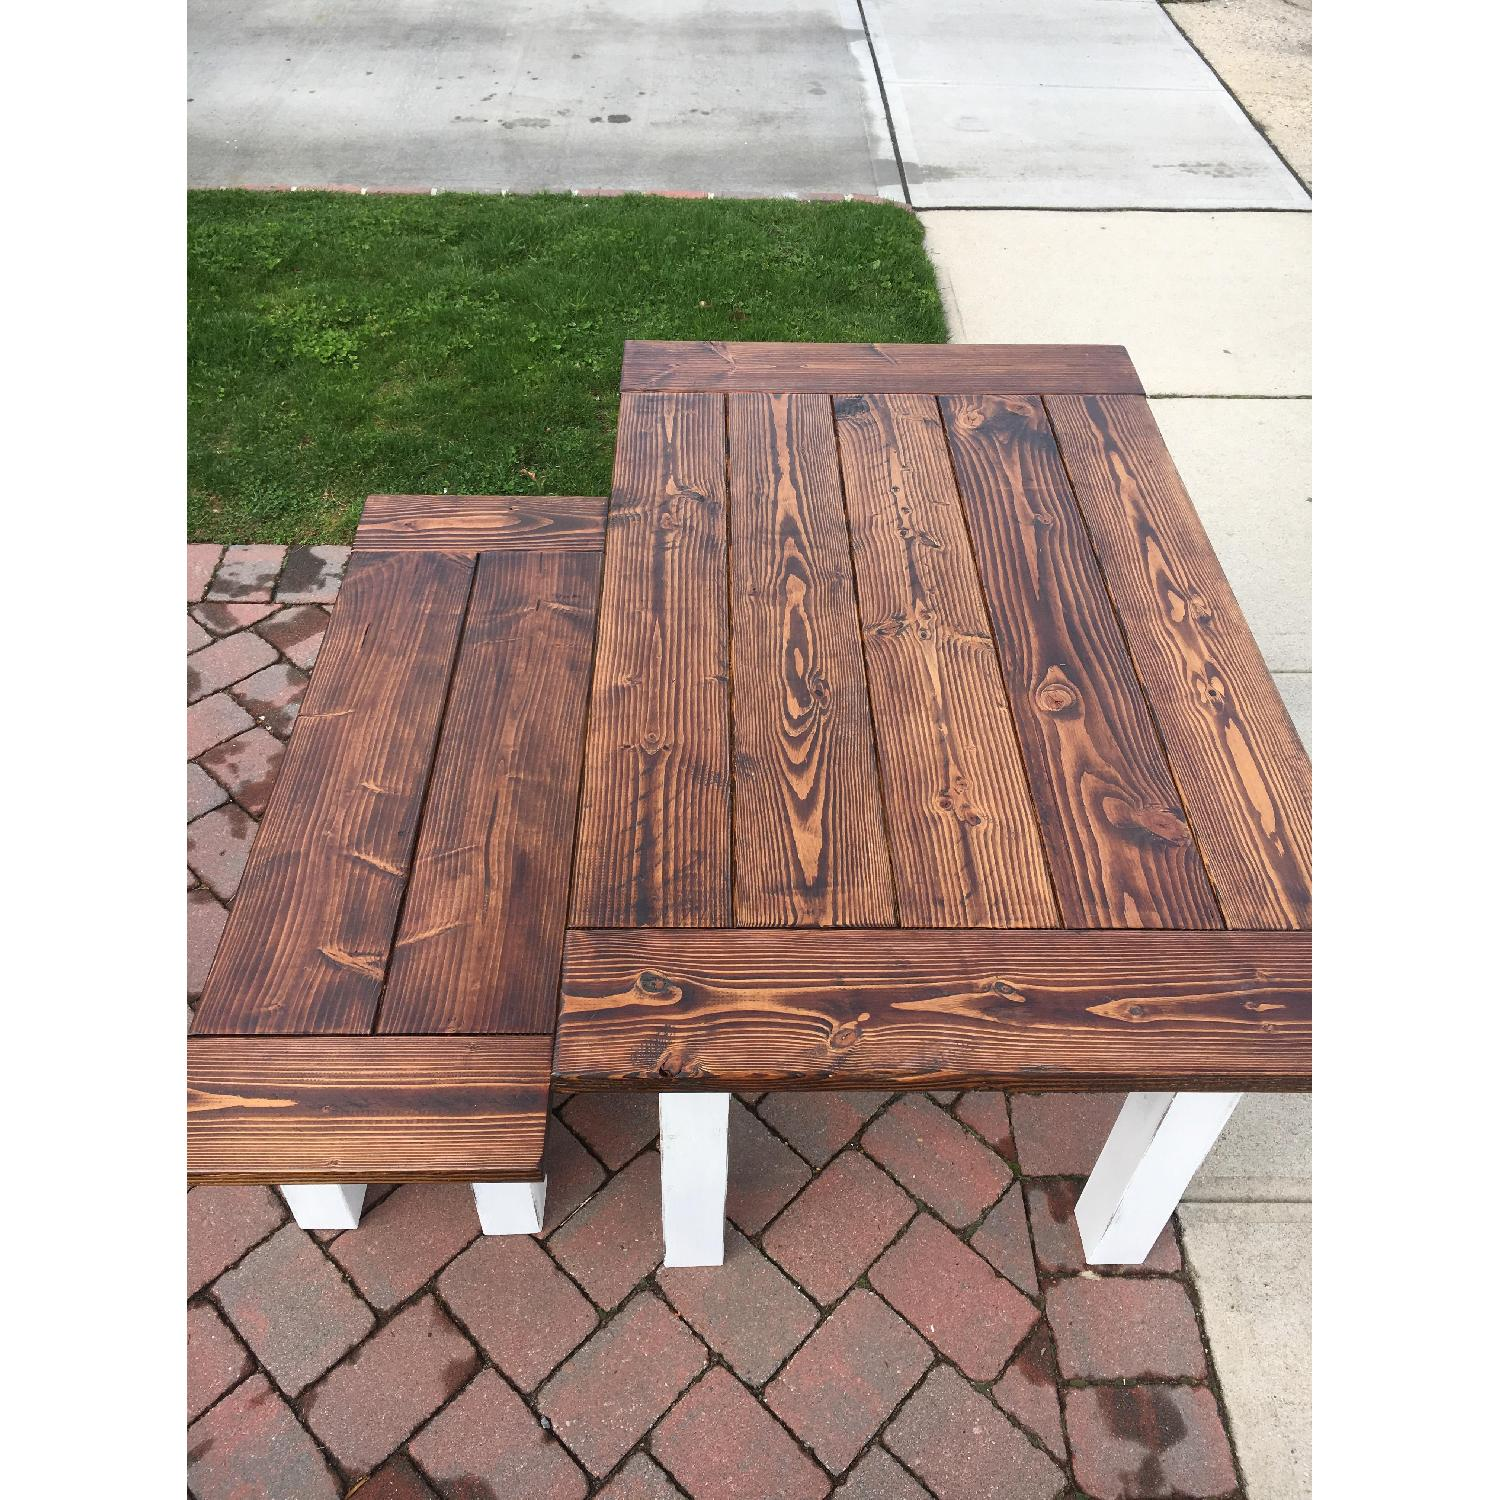 Rustic Farm Table w/ 1 Bench - image-6